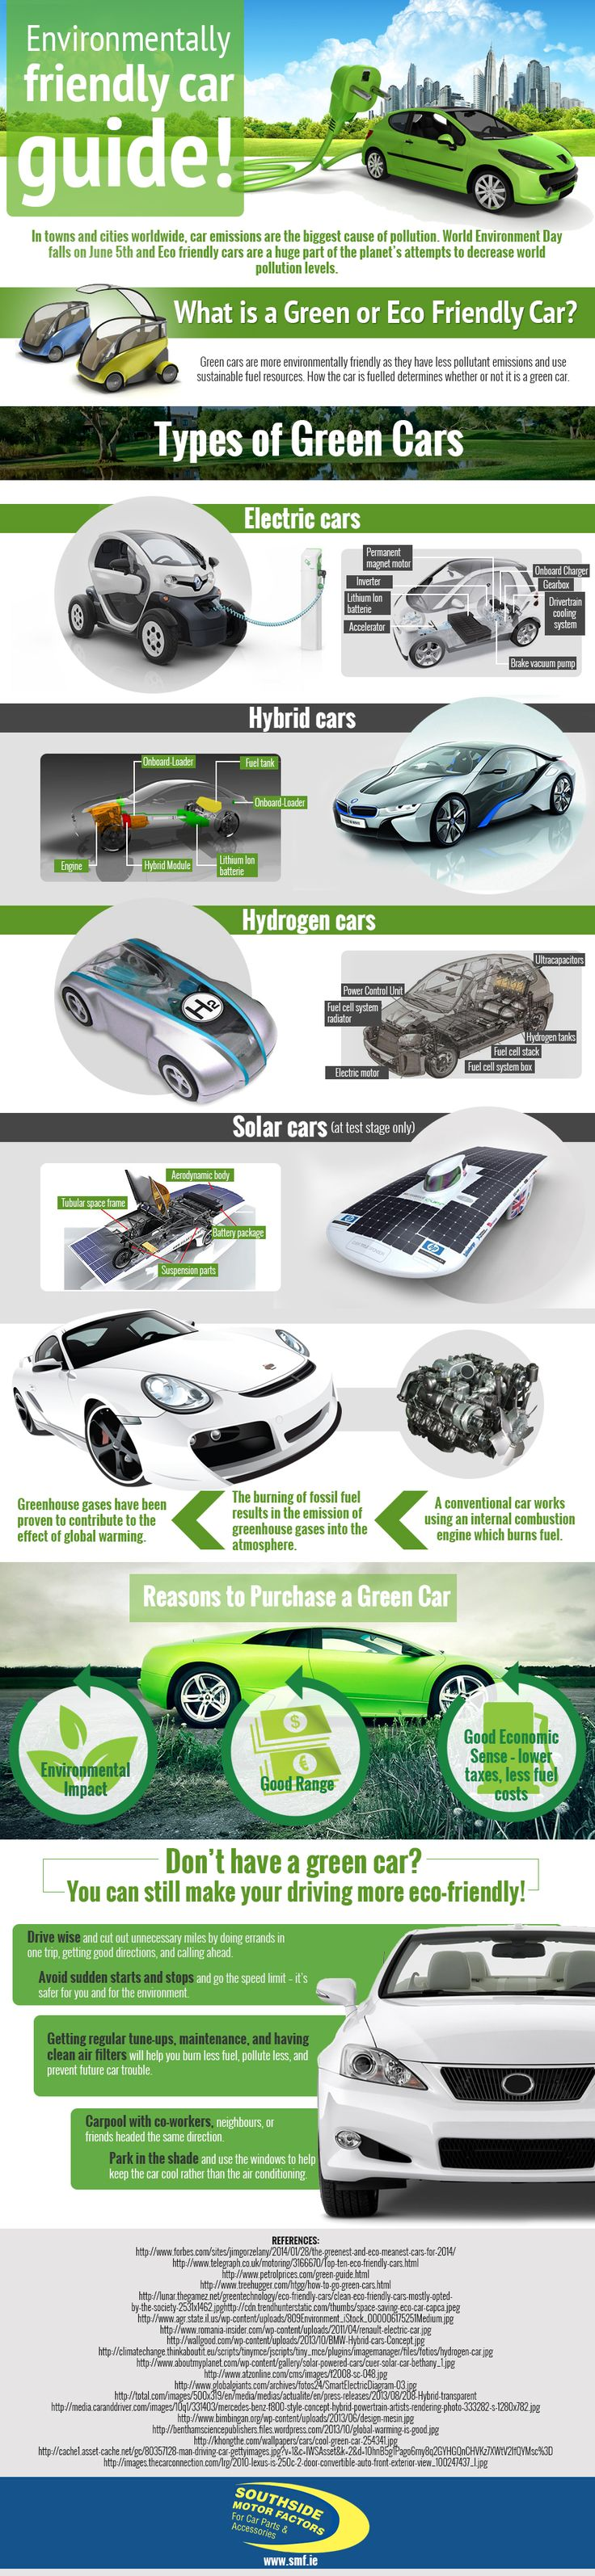 Best 25+ Car guide ideas on Pinterest | First car, Used cars uk ...